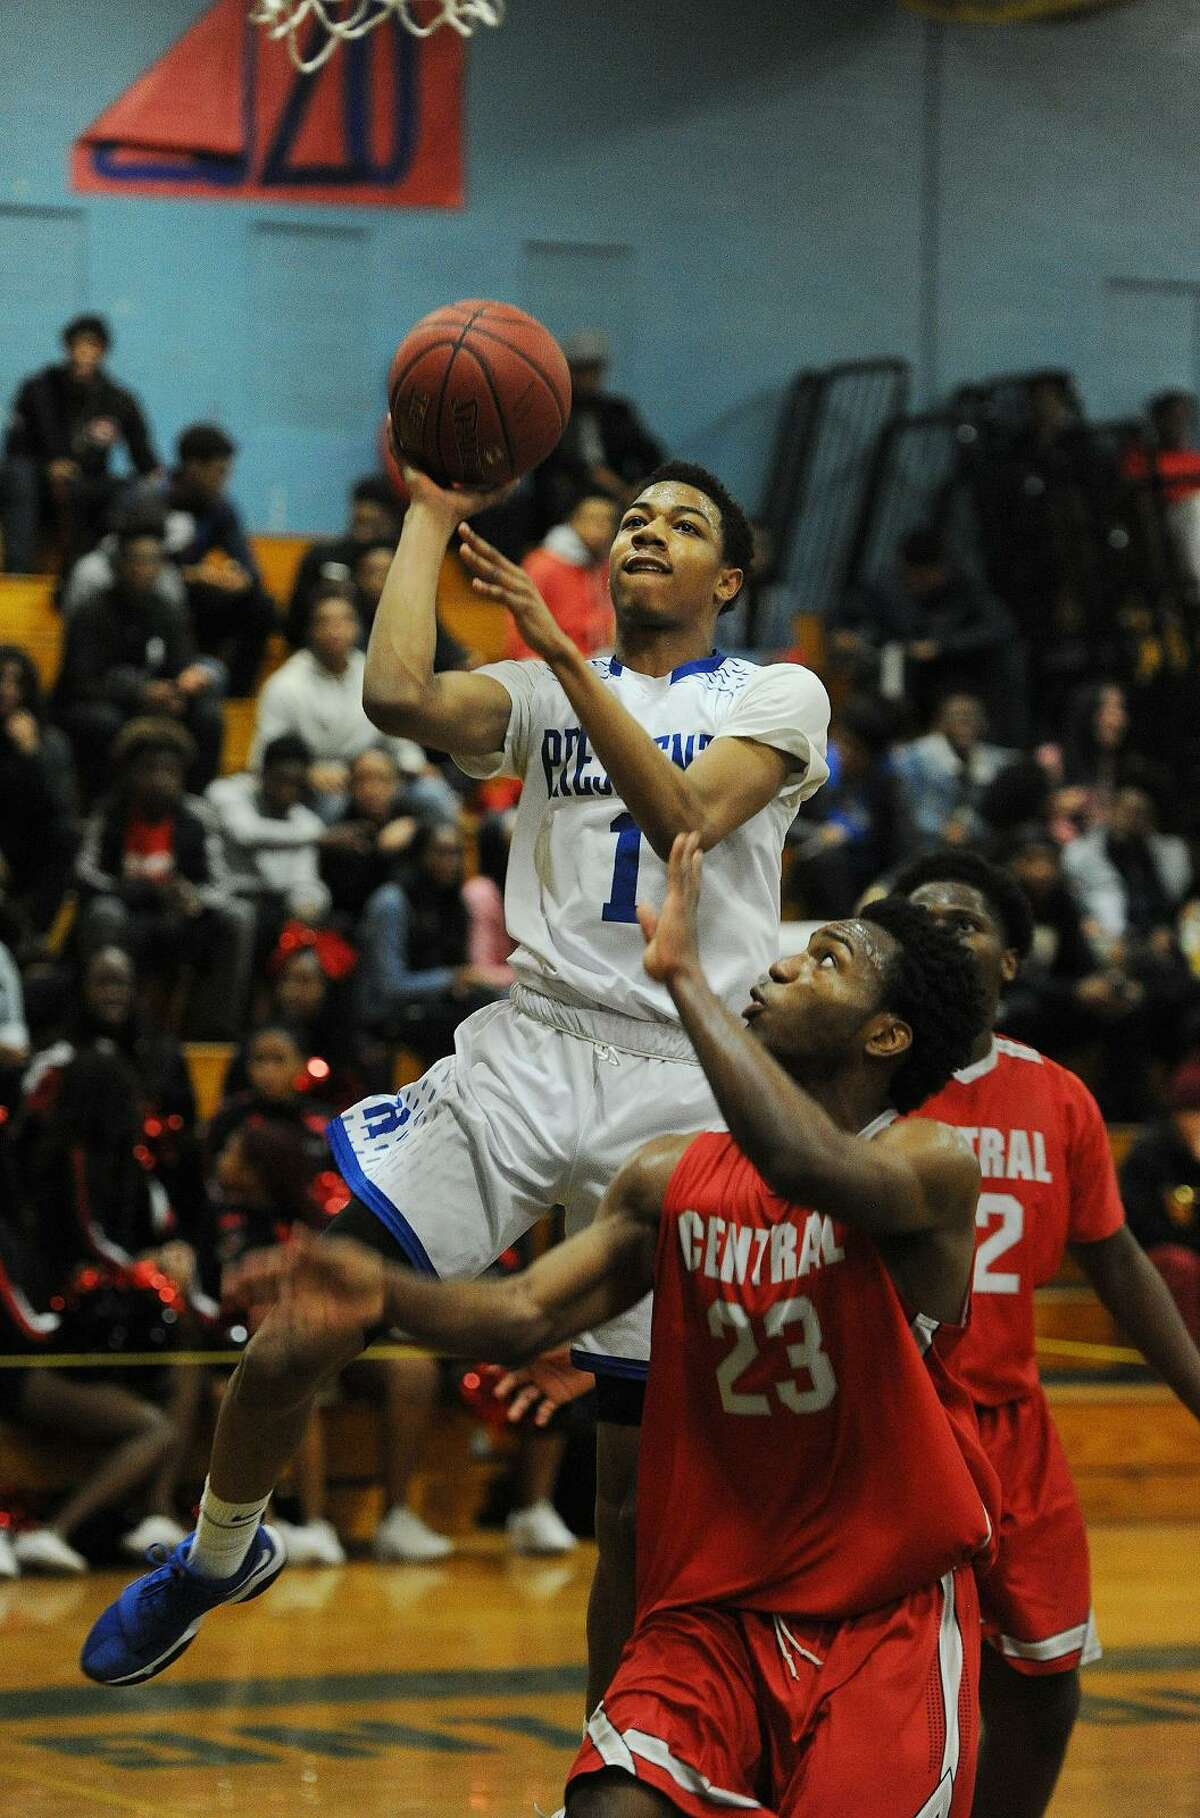 Harding's Keith Bush drives to the basket ahead of Bridgeport Central defender Raj Walker in the first half of their boys basketball game at Harding High School in Bridgeport, Conn. on Thursday, February 22, 2018. The game was the final regular season game to be played at Miska Gymnasium as the new Harding High School will open next fall.